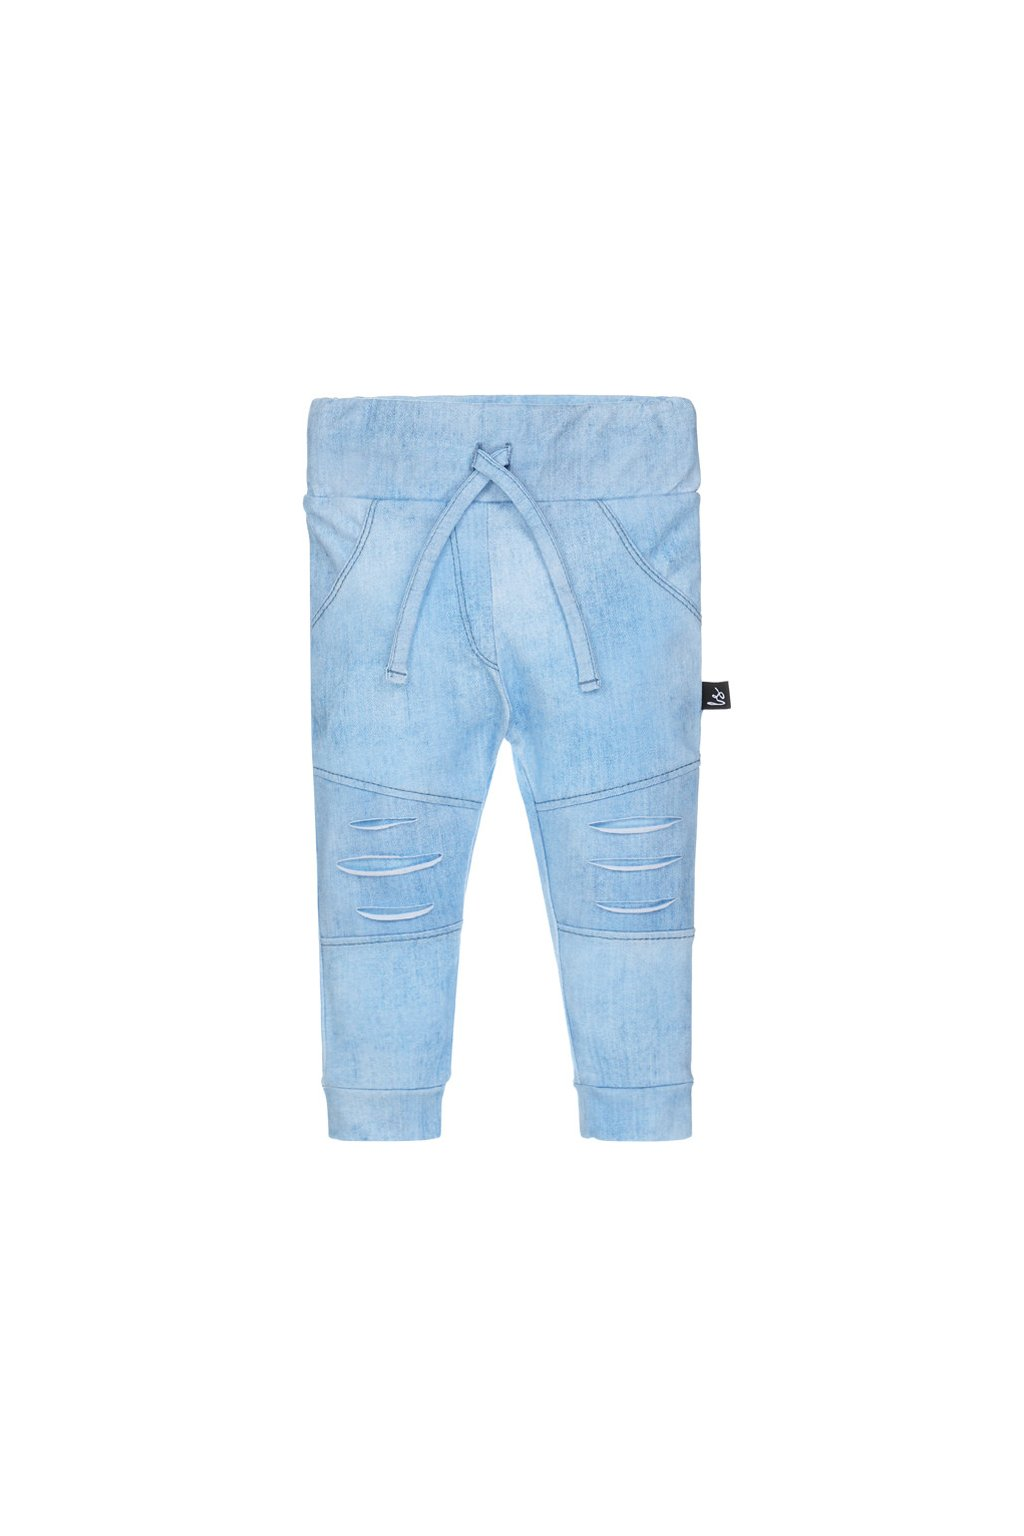 ripped jeanslook light blue babystyling (1)